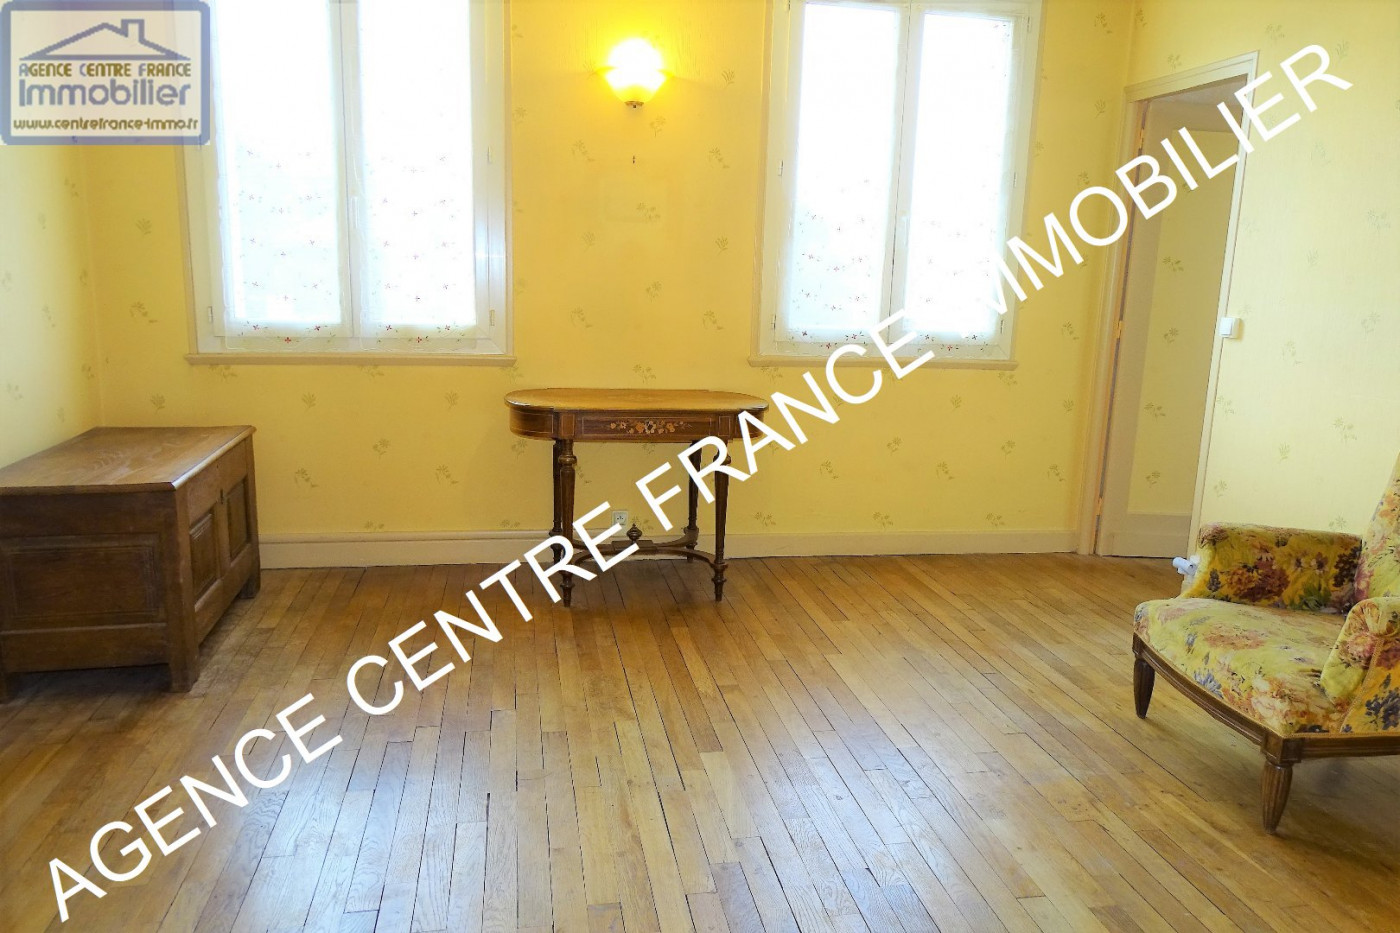 A vendre Bourges 030011464 Agence centre france immobilier